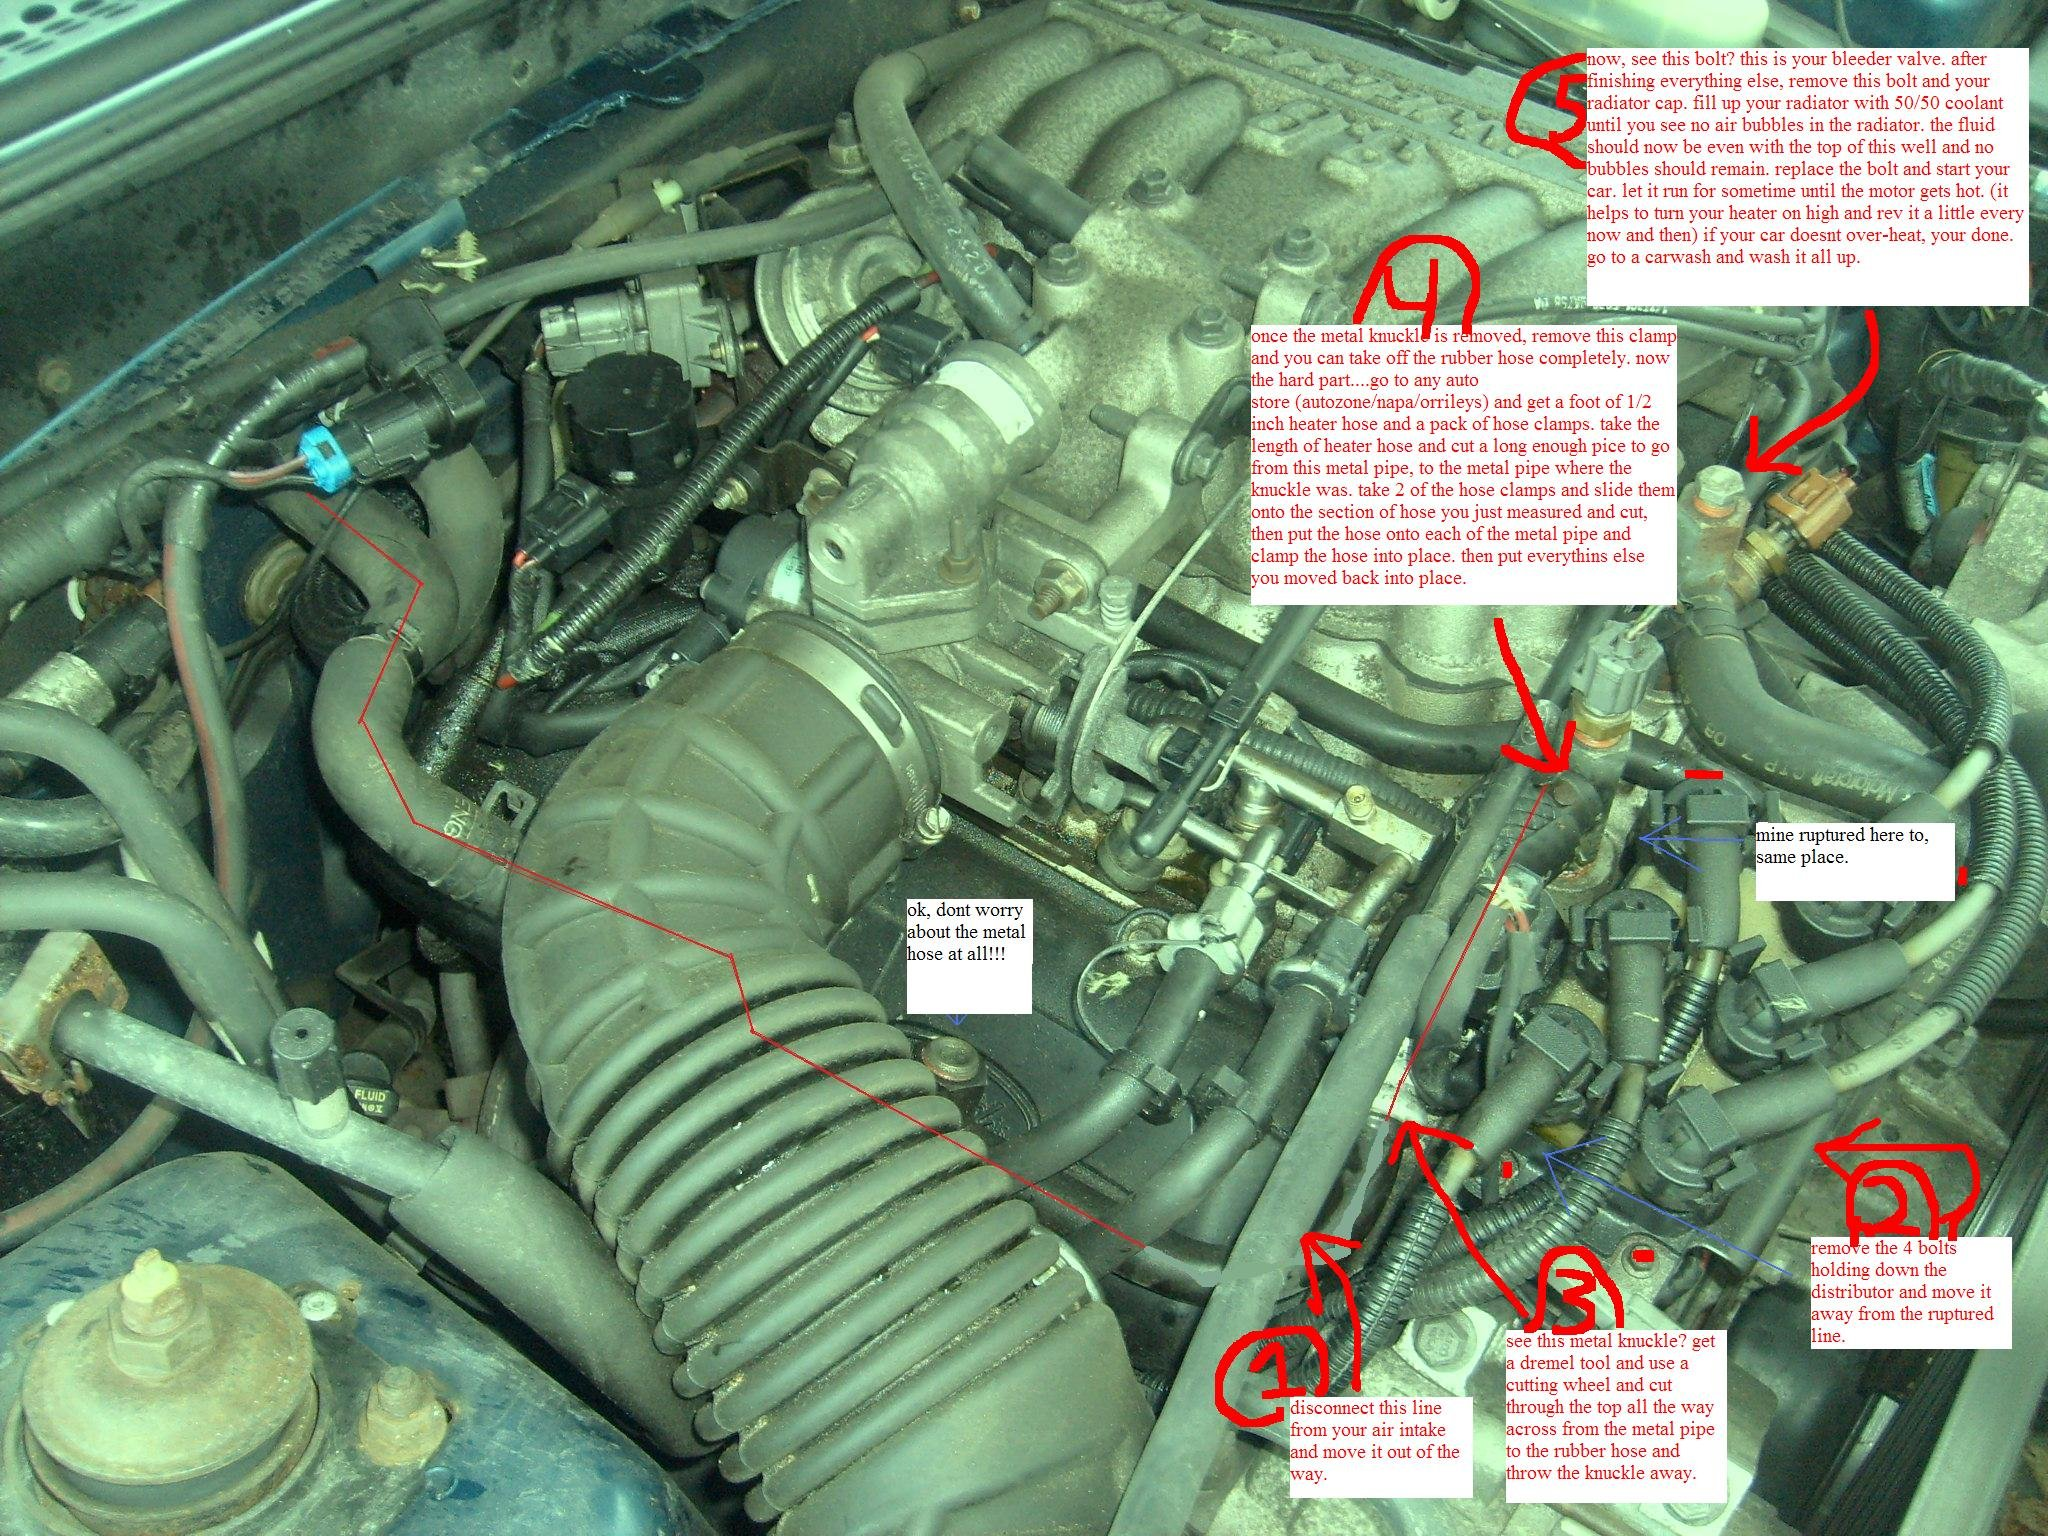 1998 Mustang Heater Hose Ruptured | Ford Mustang Forum | 1998 Mustang V6 Engine Diagram |  | All Ford Mustangs